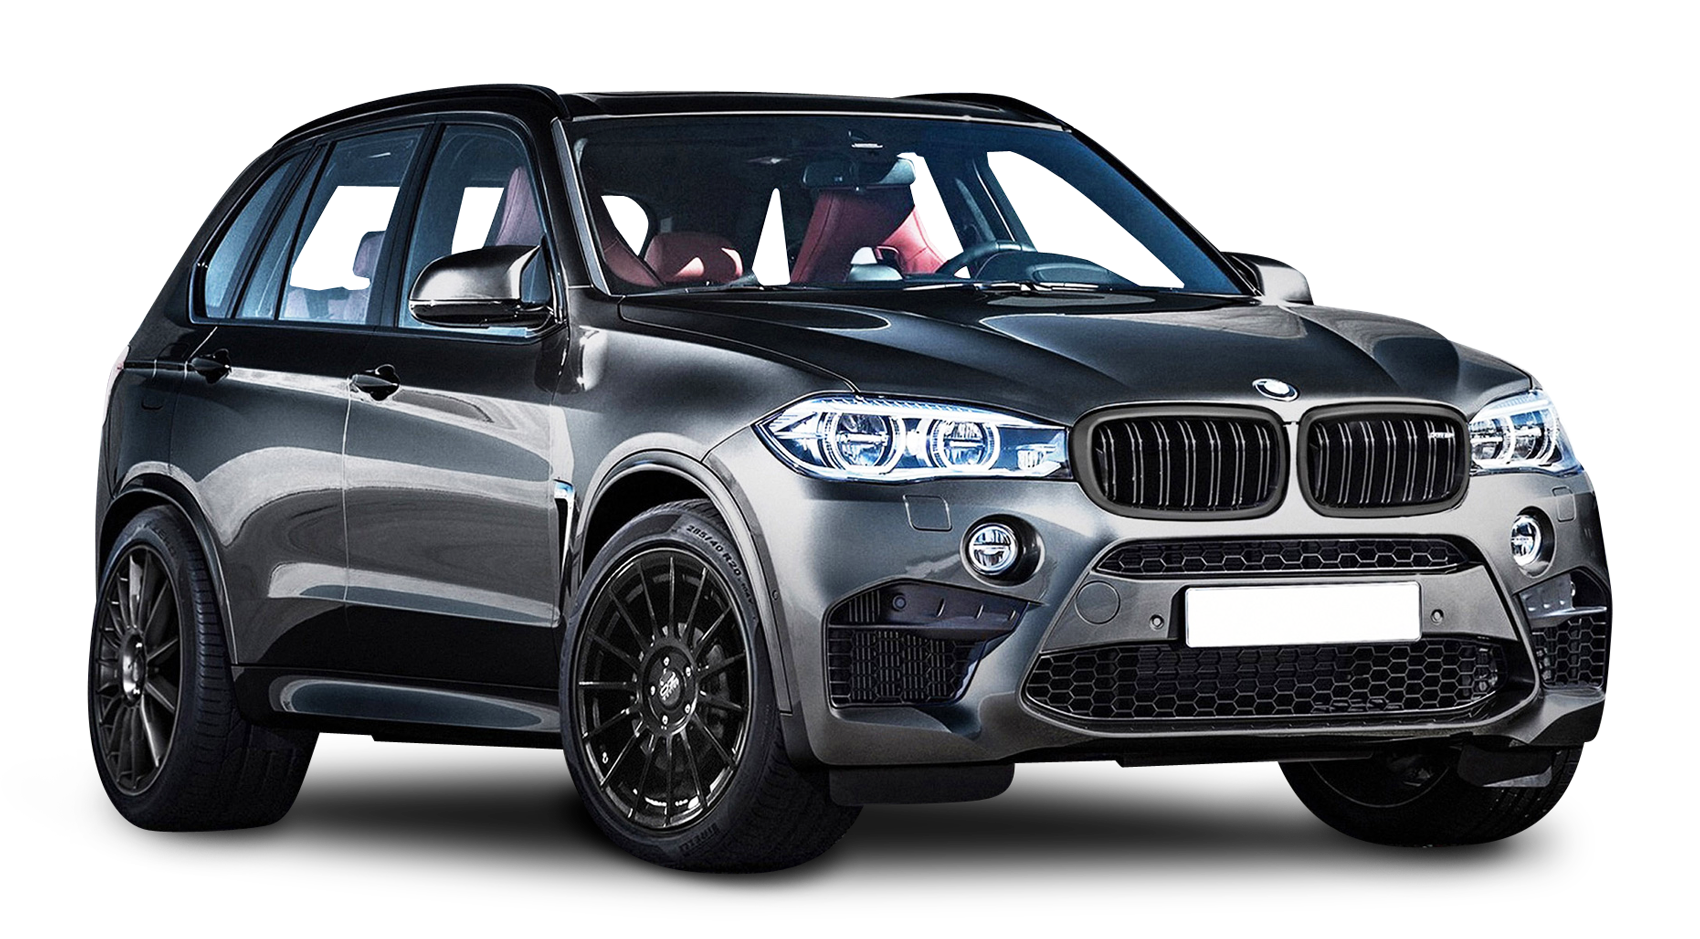 BMW X5 Black Car PNG Image.